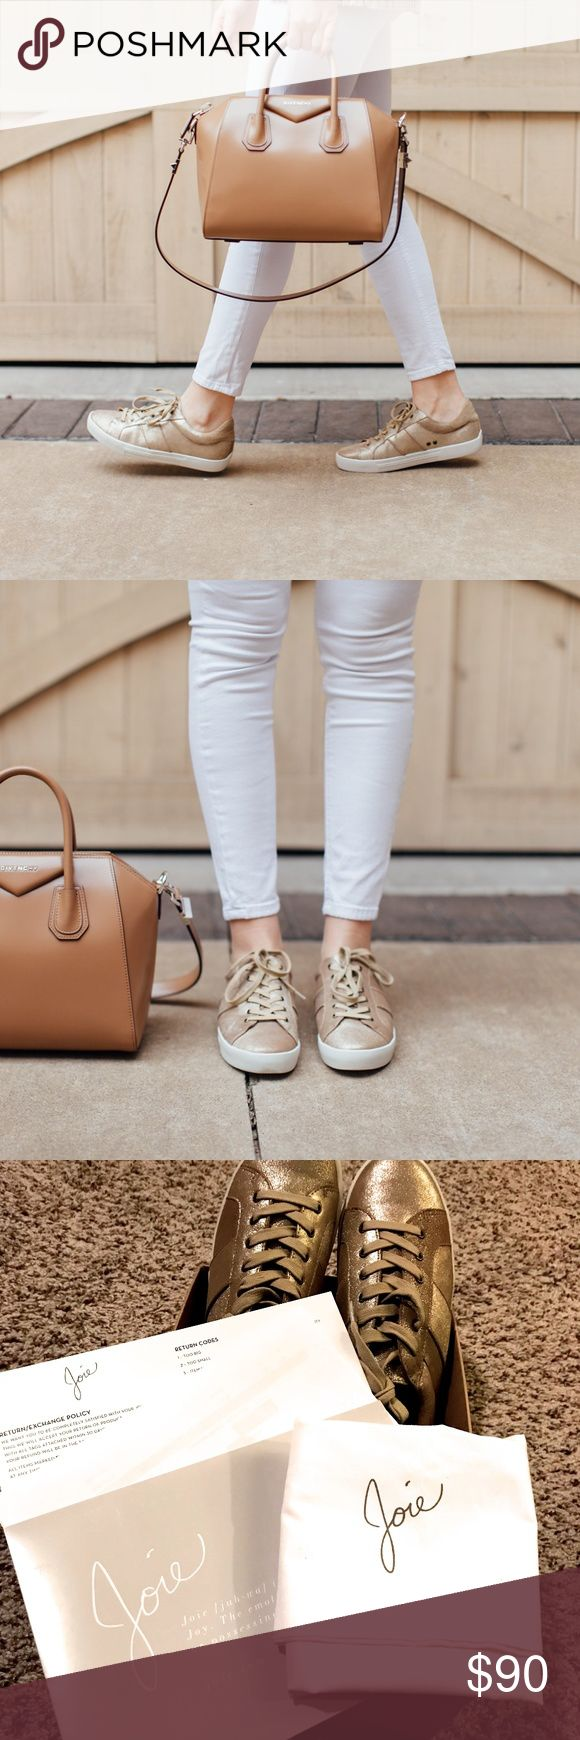 Joie Dakota Sneaker Gold Saglia Brand new never worn. Add a casual-cool feel to any look with the Dakota sneakers in crisp gold leather featuring a slightly raised platform and a lace-up front. 100% leather with rubber outsole.  Comes with joie shoe bag. Joie Shoes Sneakers